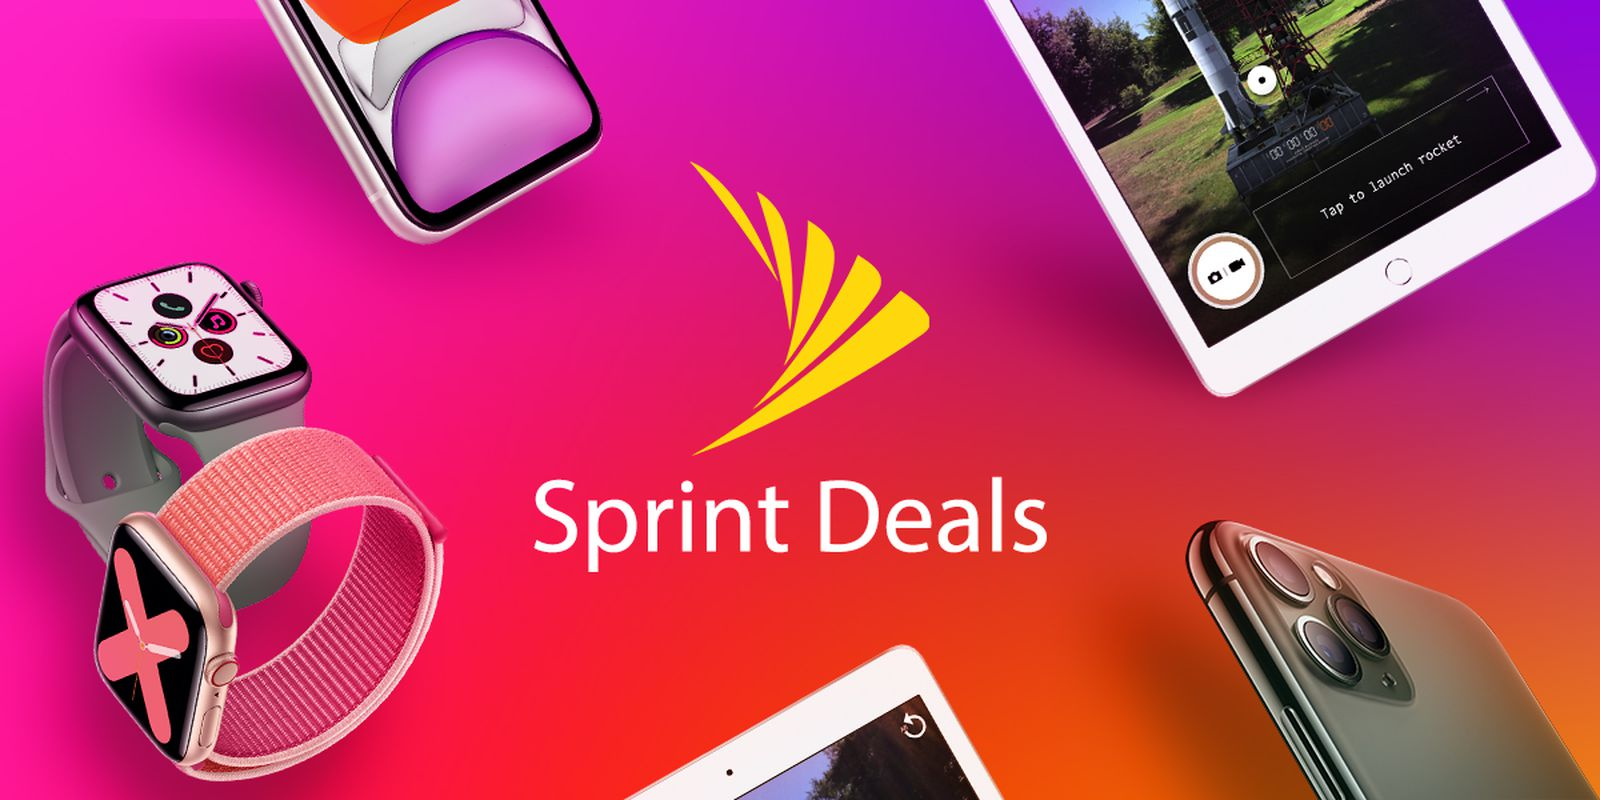 Deals Spotlight Sprint Offers Savings On Iphone Xr Iphone 11 10 2 Inch Ipad And Apple Watch Series 5 Macrumors